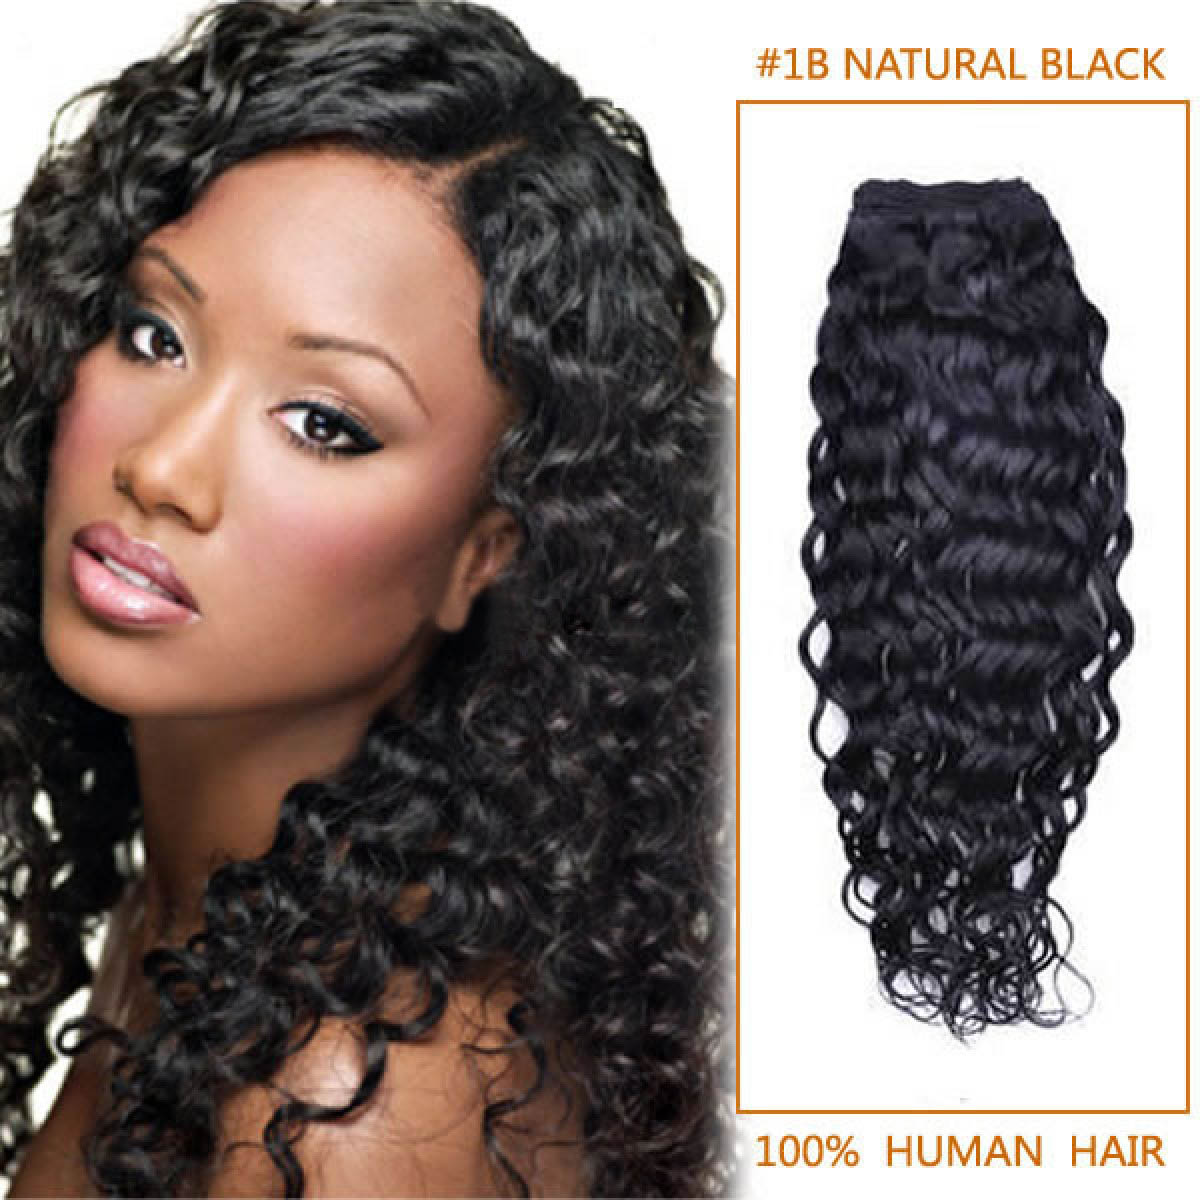 10 Inch  1b Natural Black Curly Indian Remy Hair Wefts 7431497a9